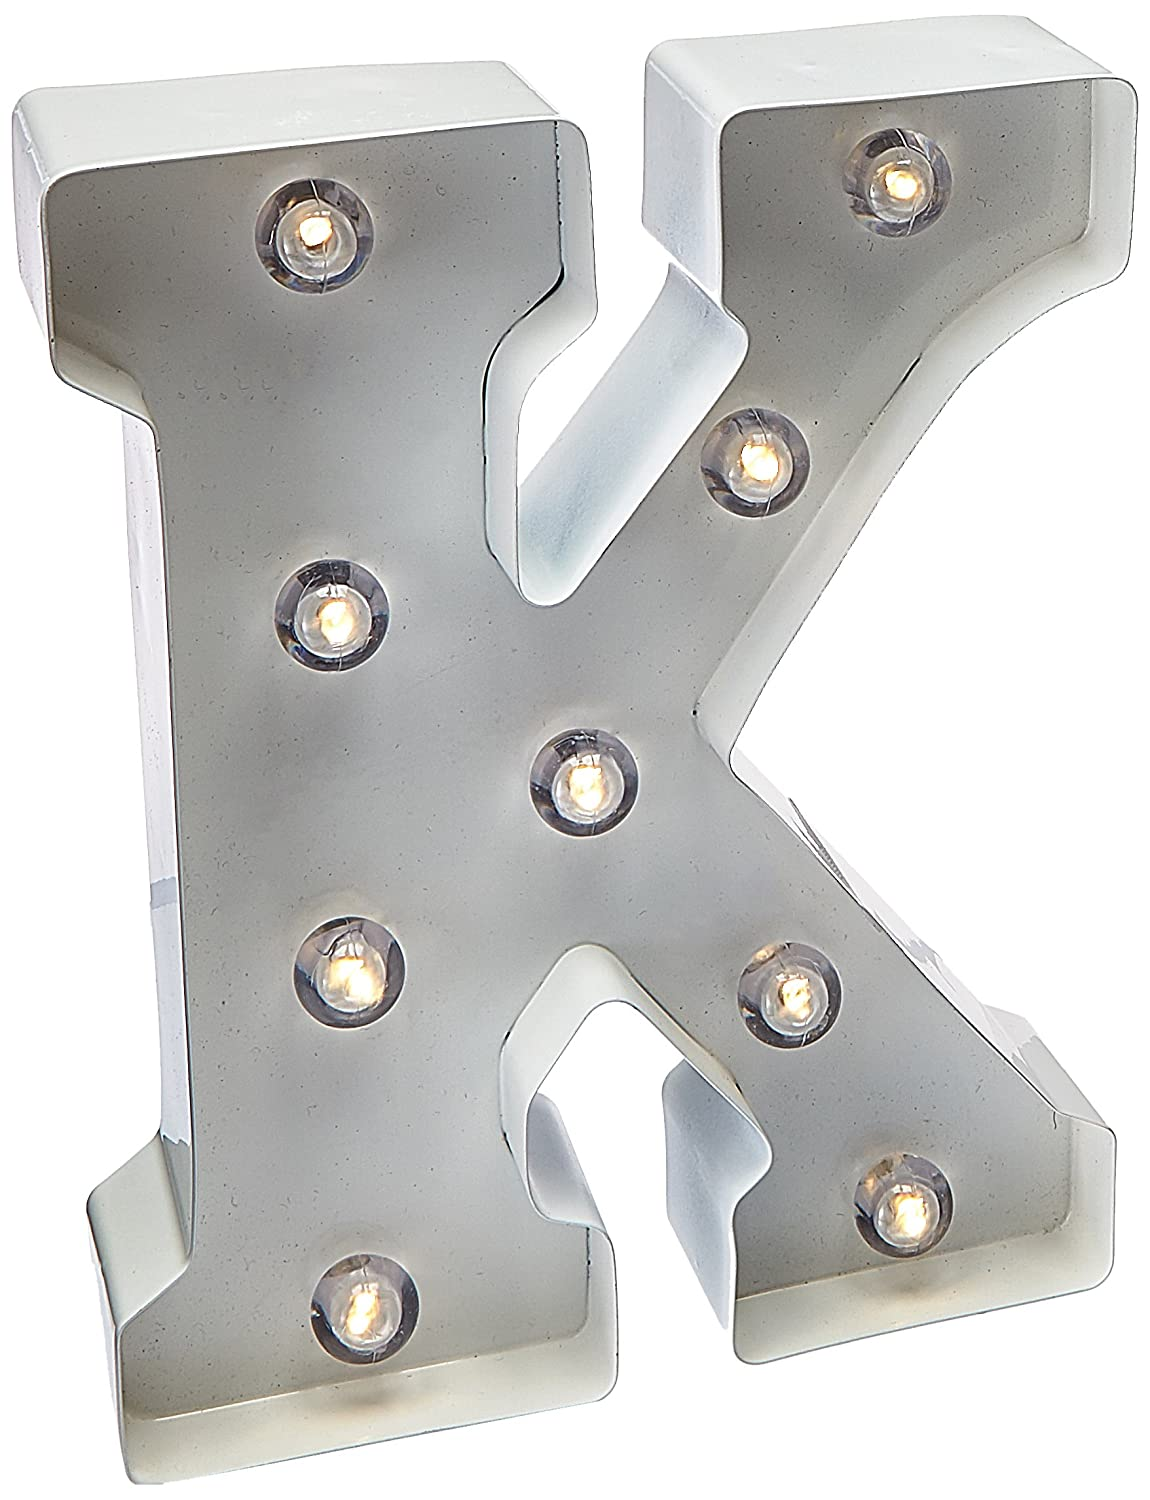 Darice Light Up White Marquee Letters - Letter J - 9.875 inches 5915-787